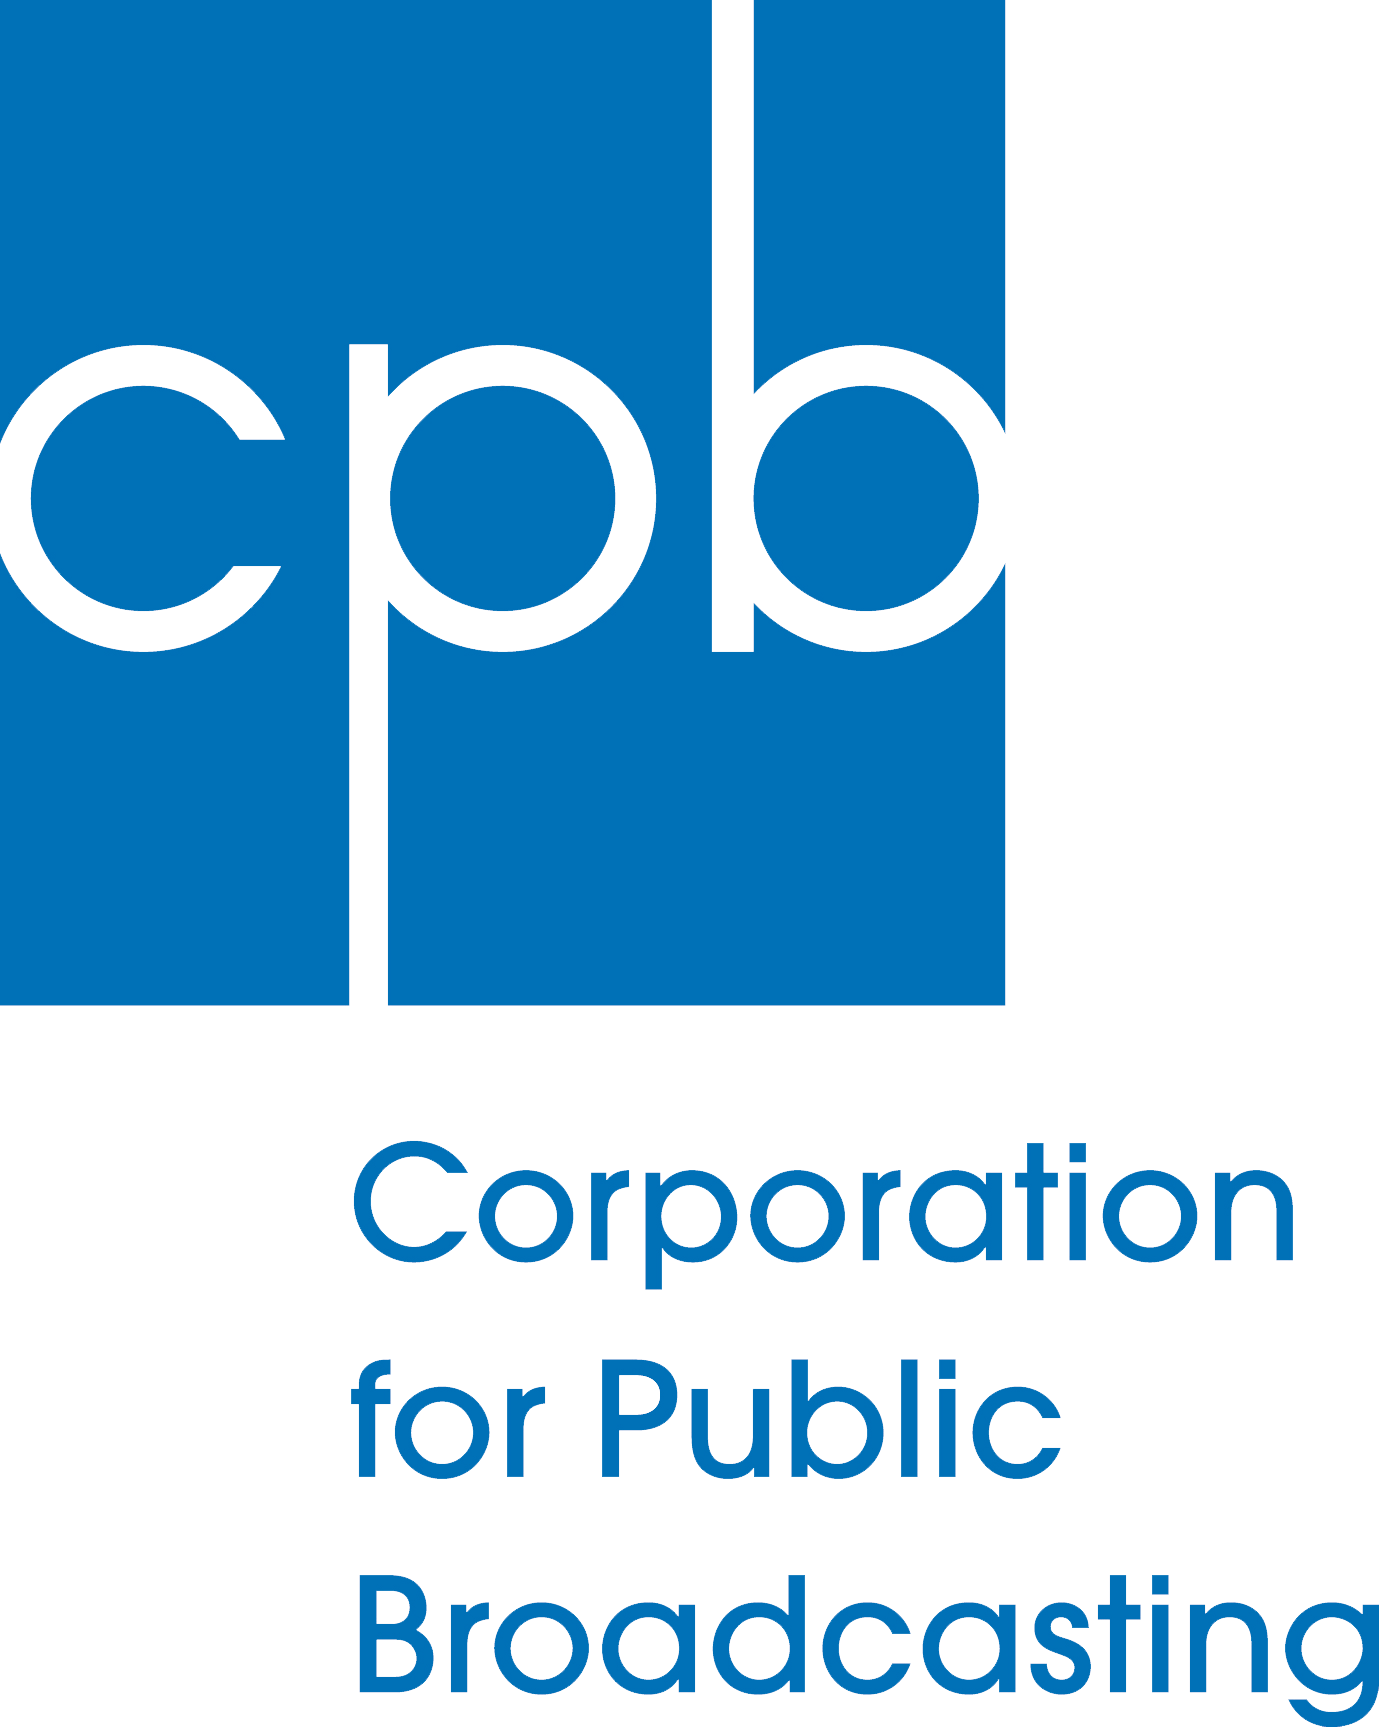 cpb_logo_press_noback